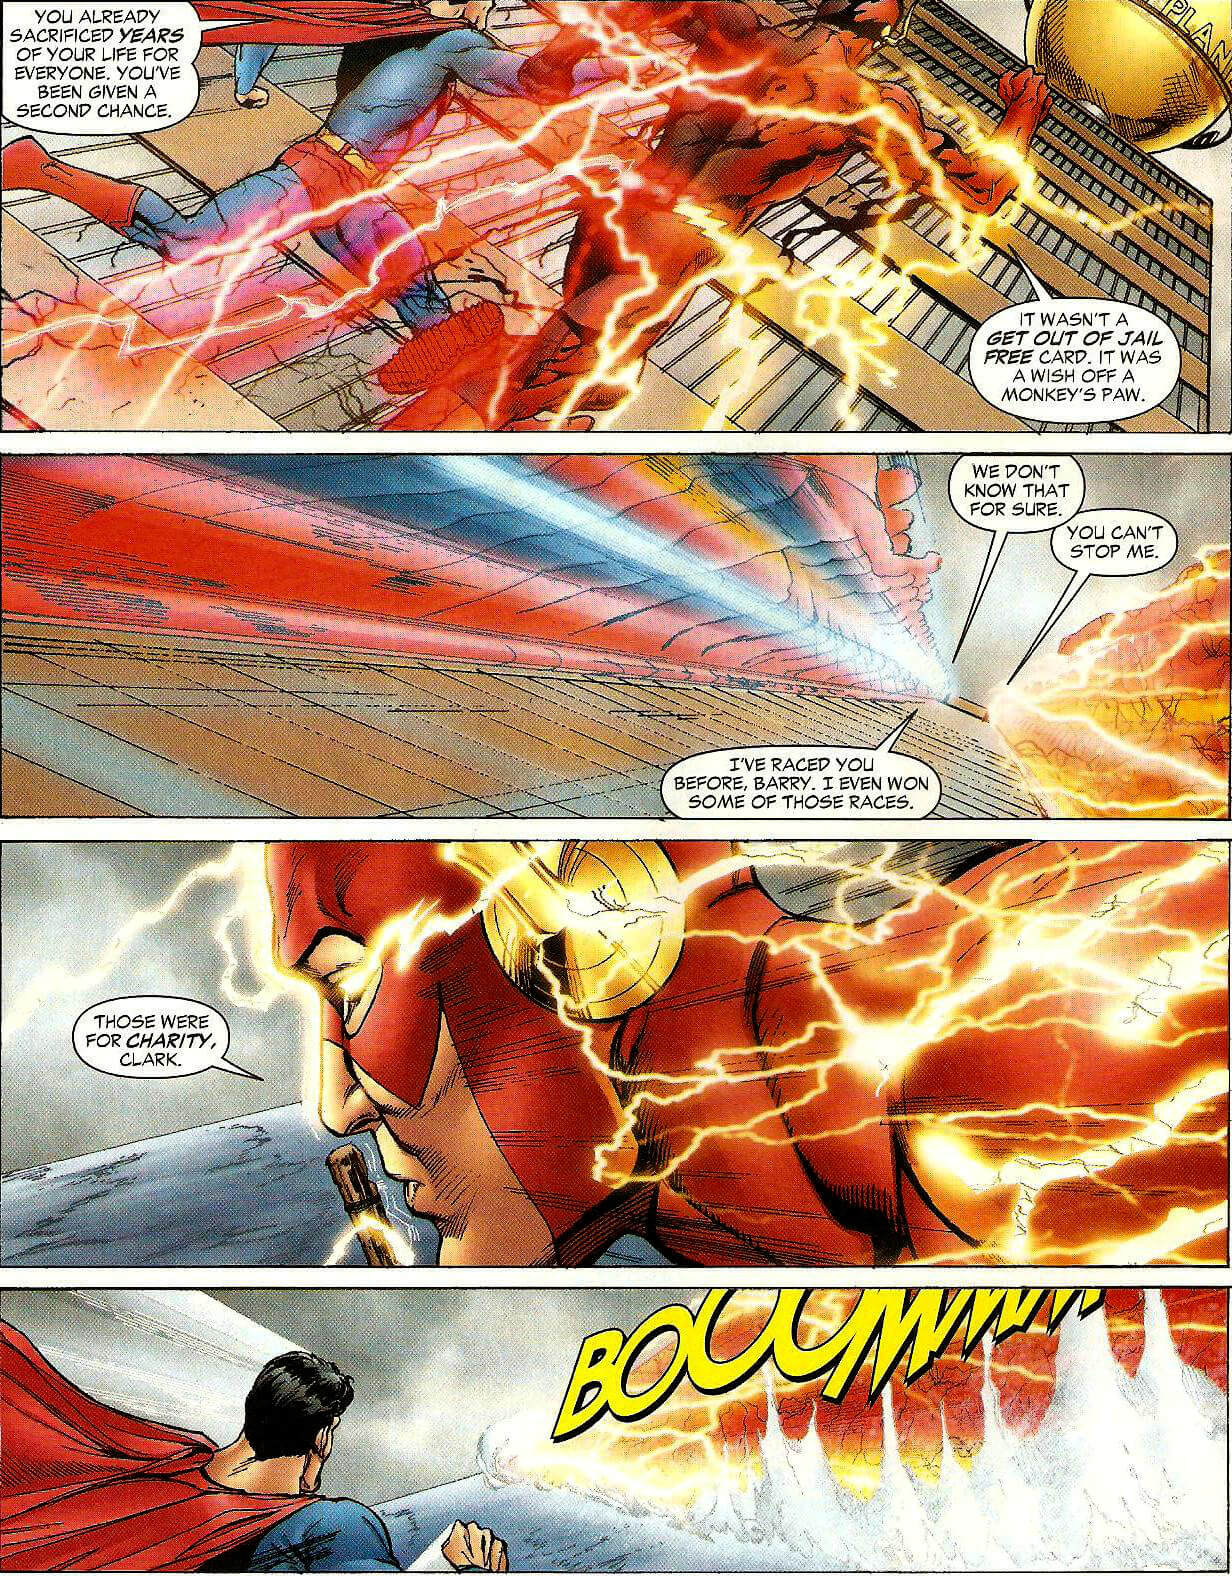 the Flash, feats of speed,